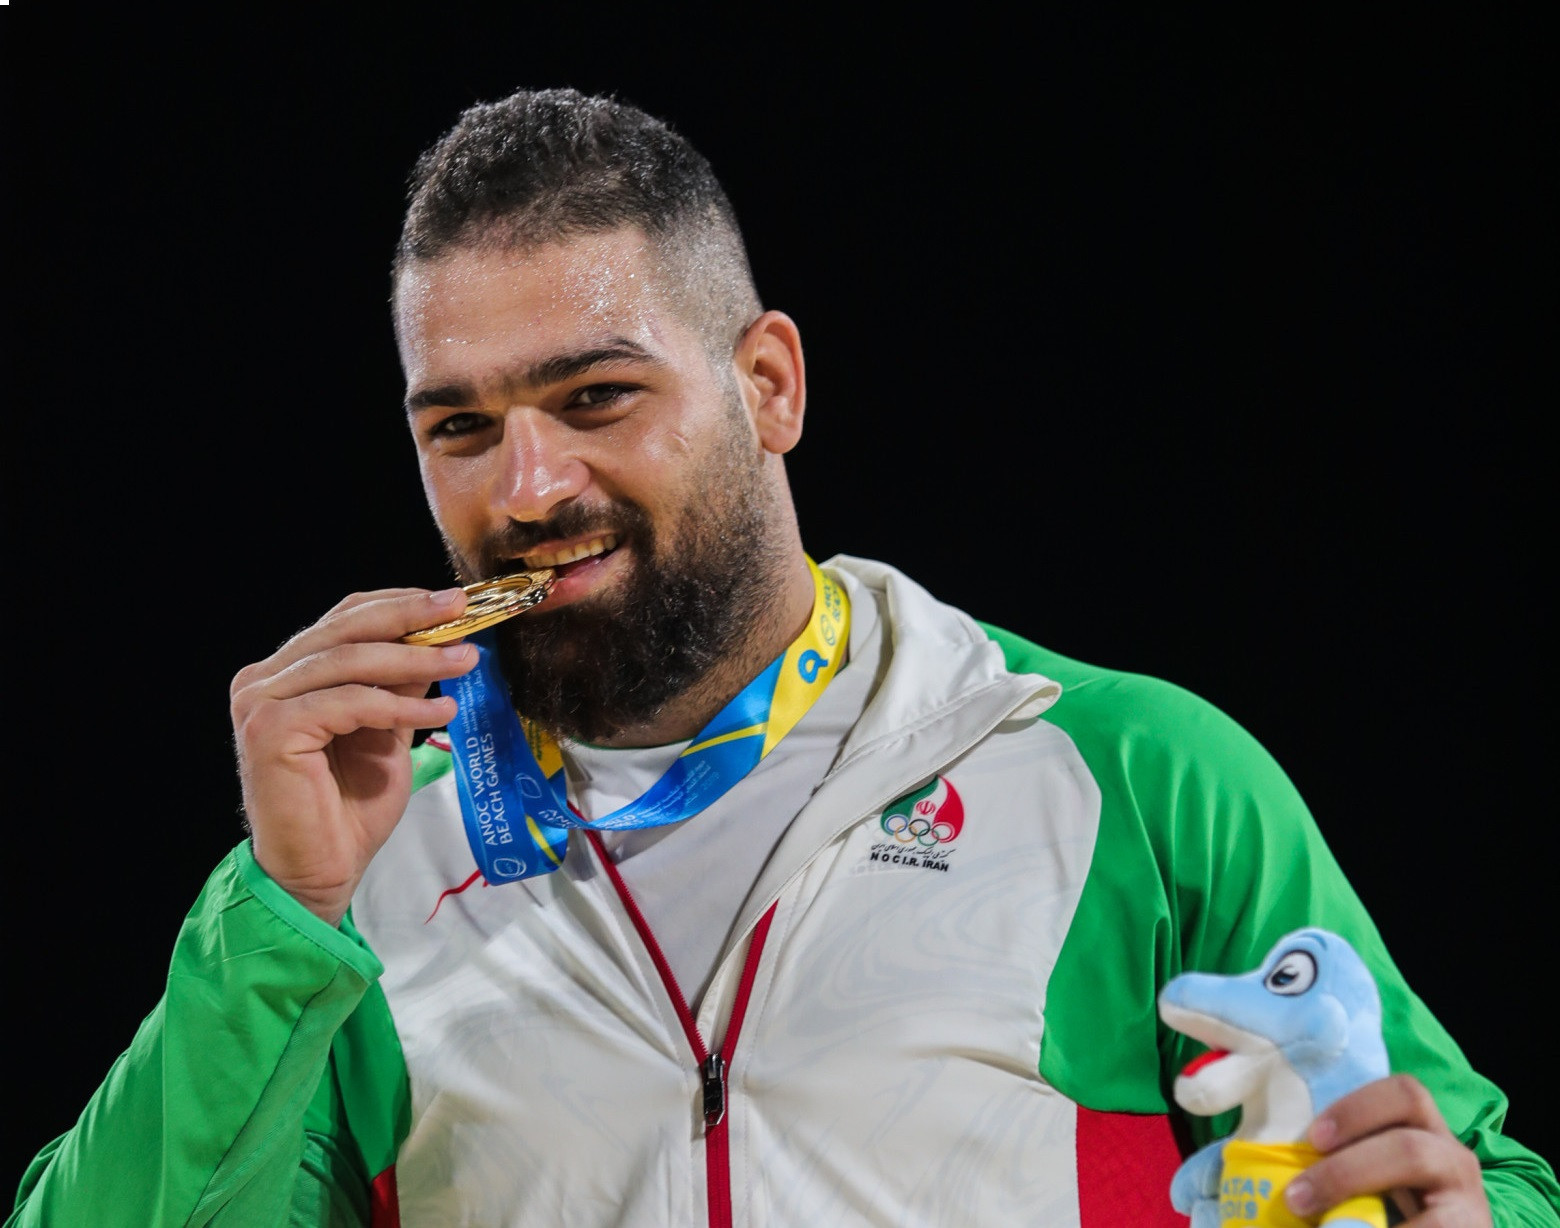 Iranian wrestler Rahmani set to be stripped of ANOC World Beach Games gold medal for doping